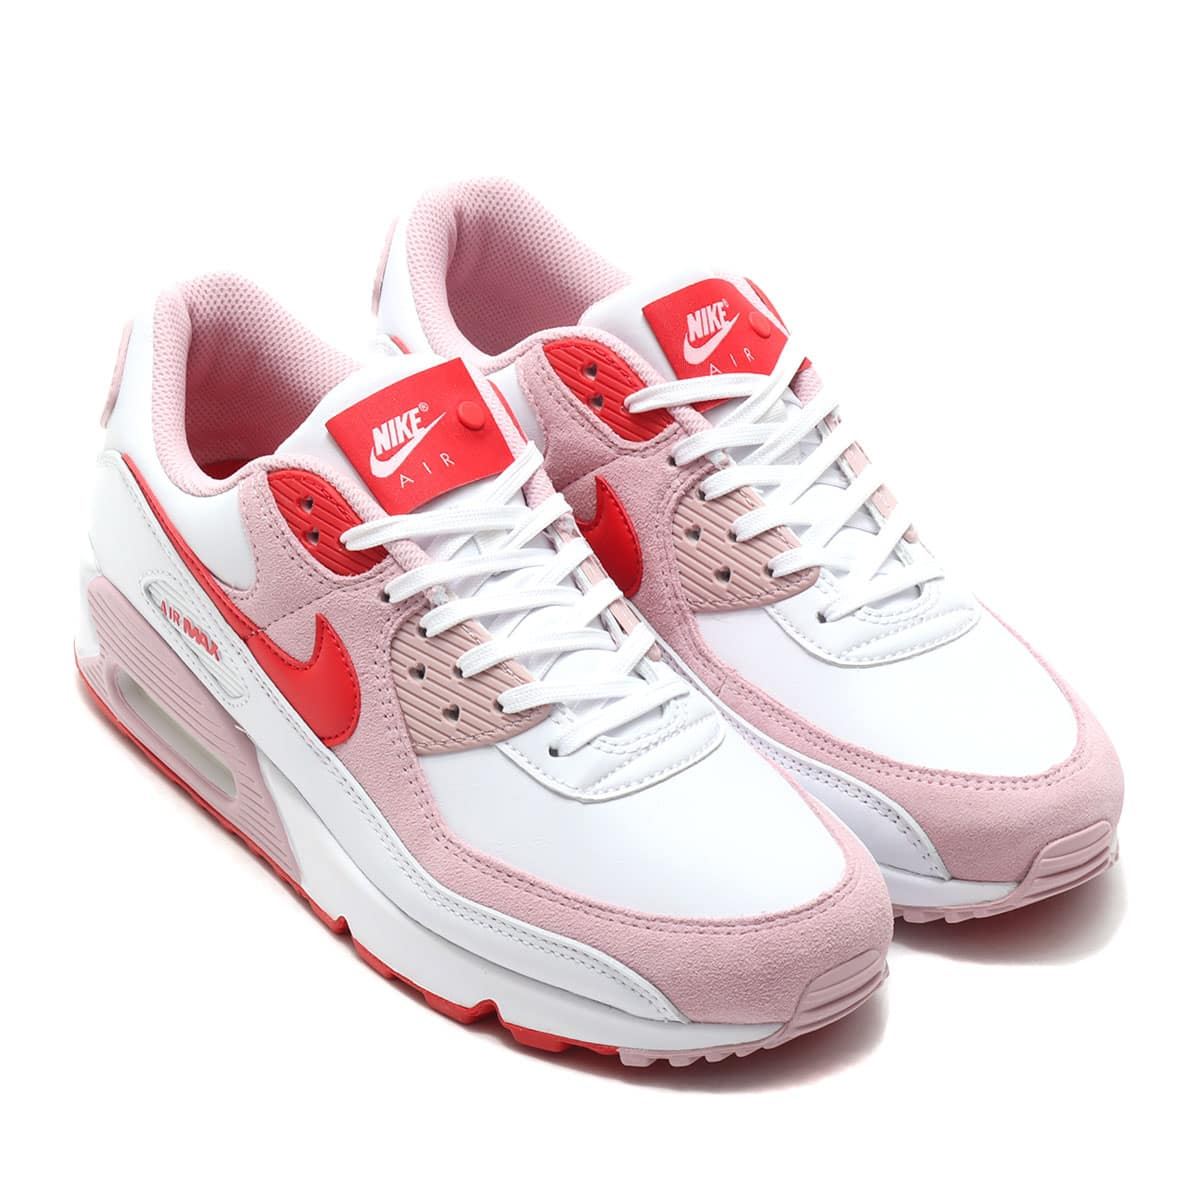 NIKE W AIR MAX 90 QS WHITE/UNIVERSITY RED-TULIP PINK-WHITE 21SP-S_photo_large